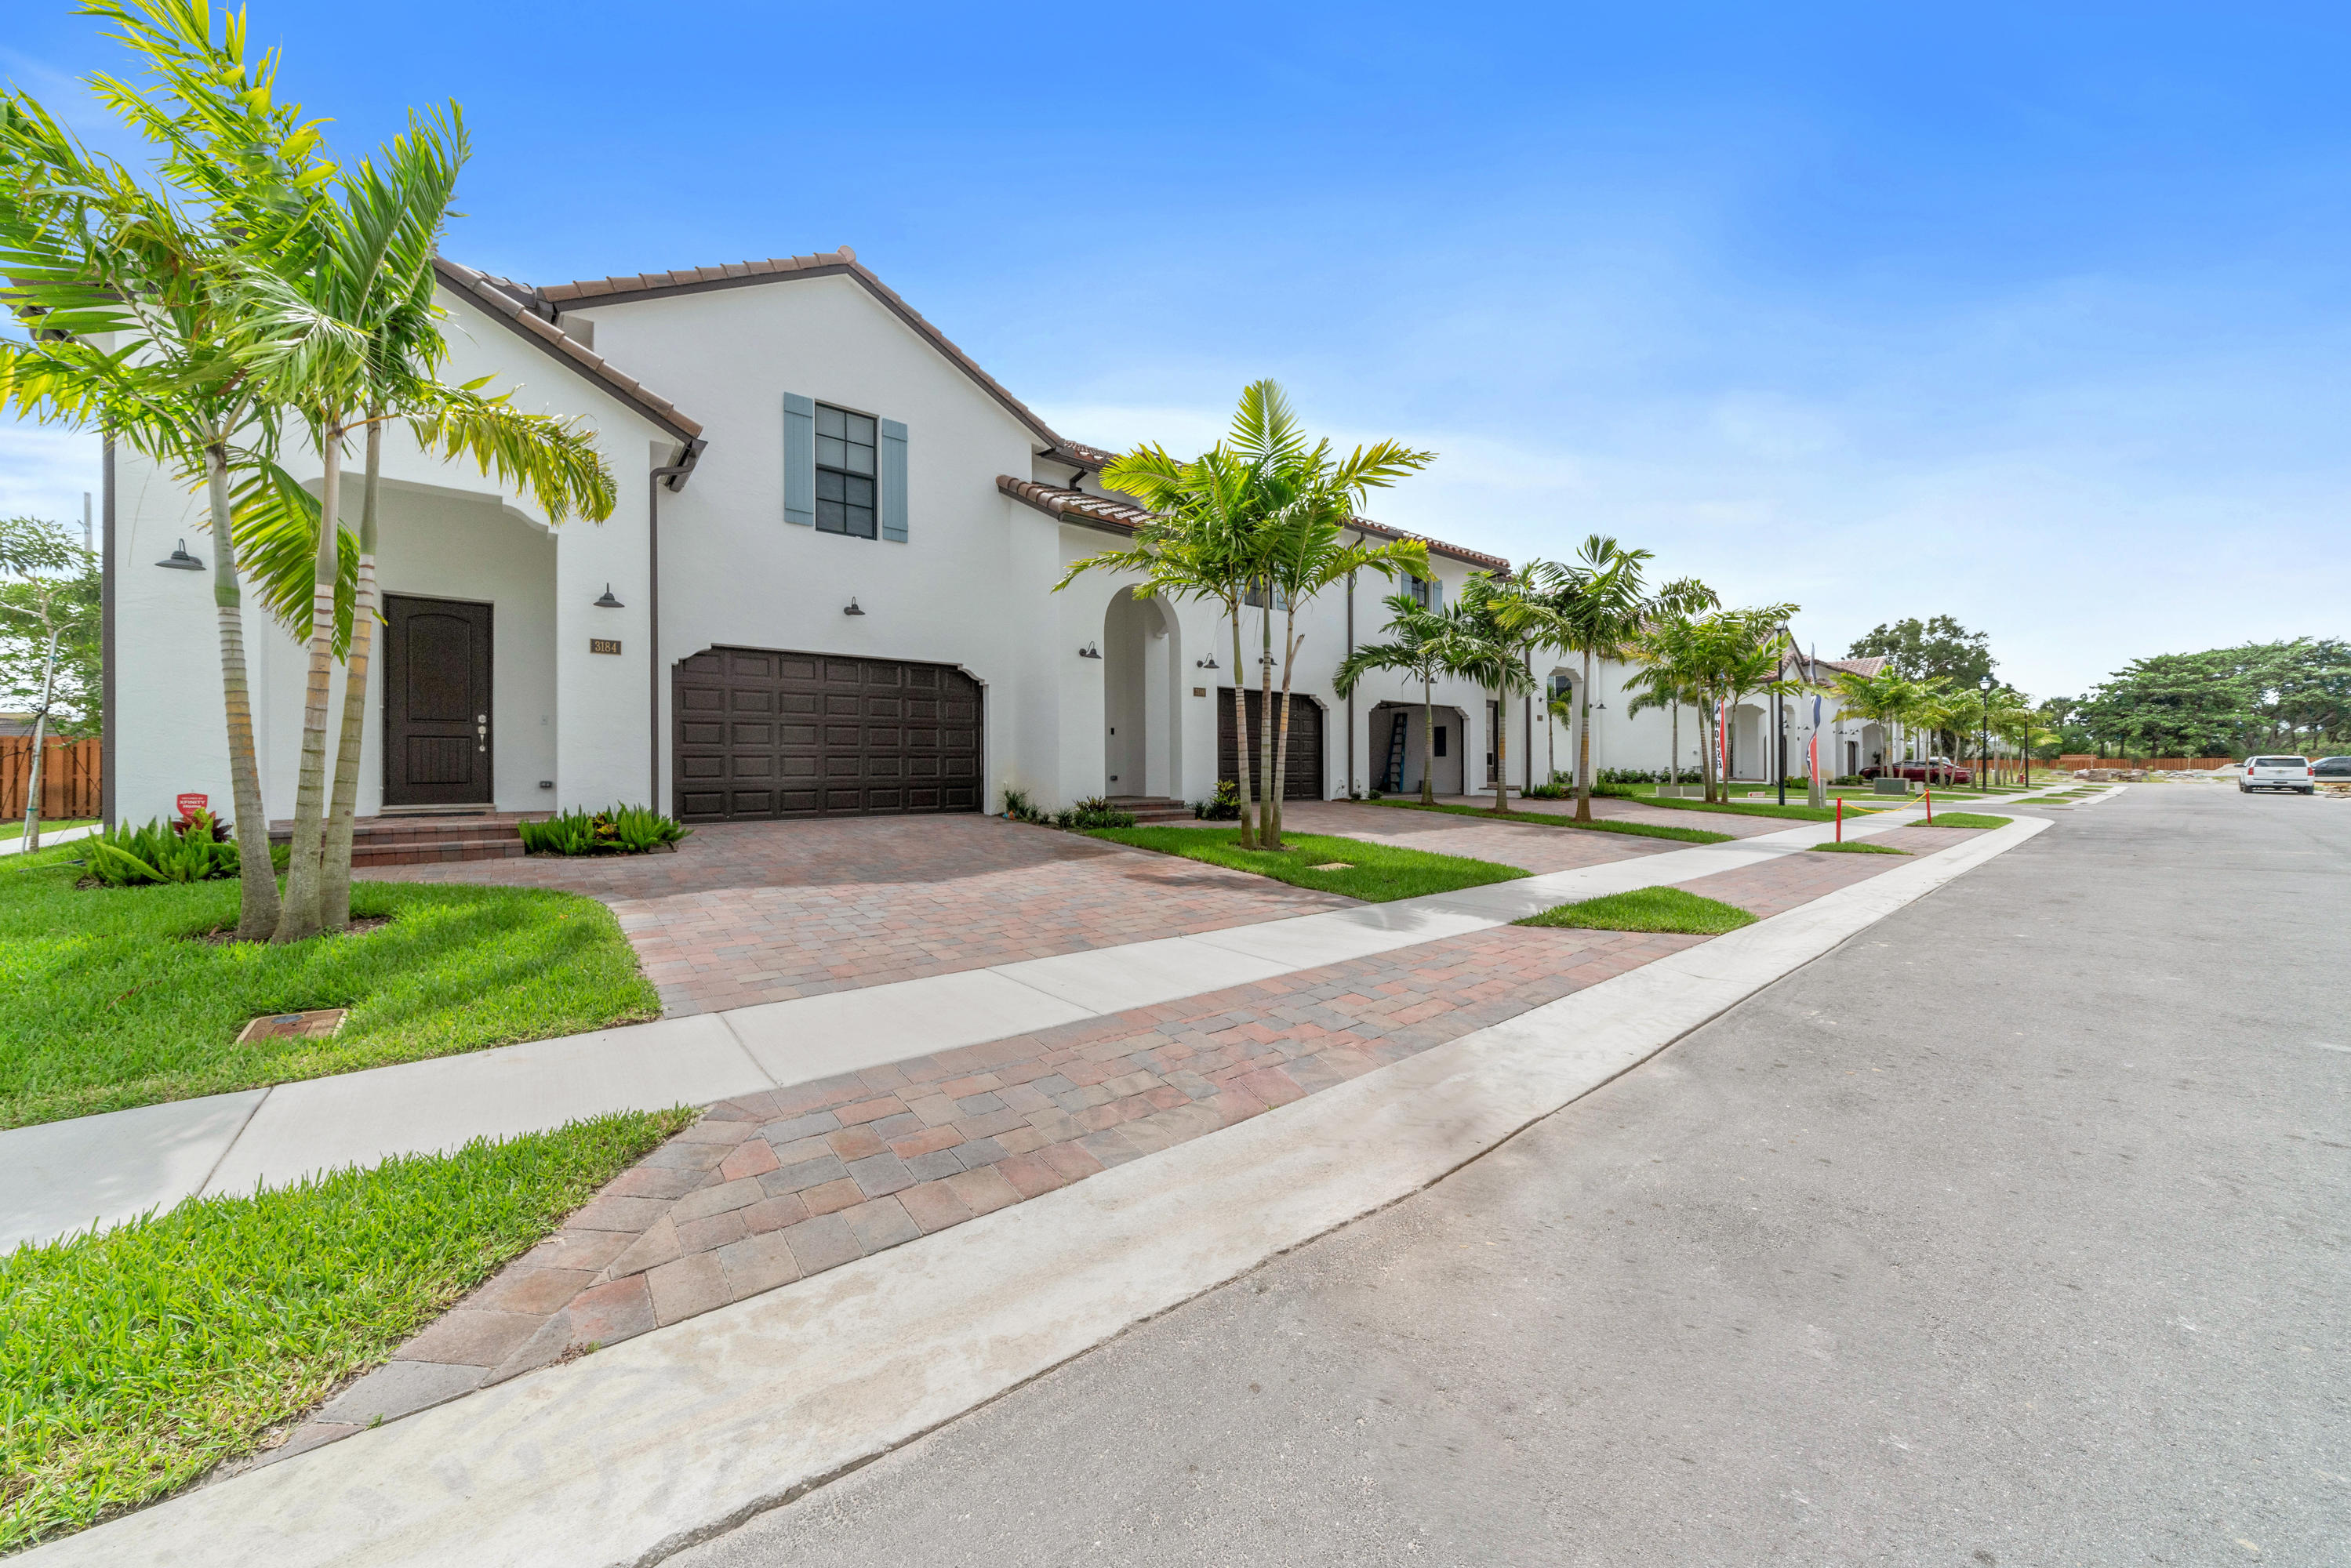 Home for sale in Santa Catalina Greenacres Florida